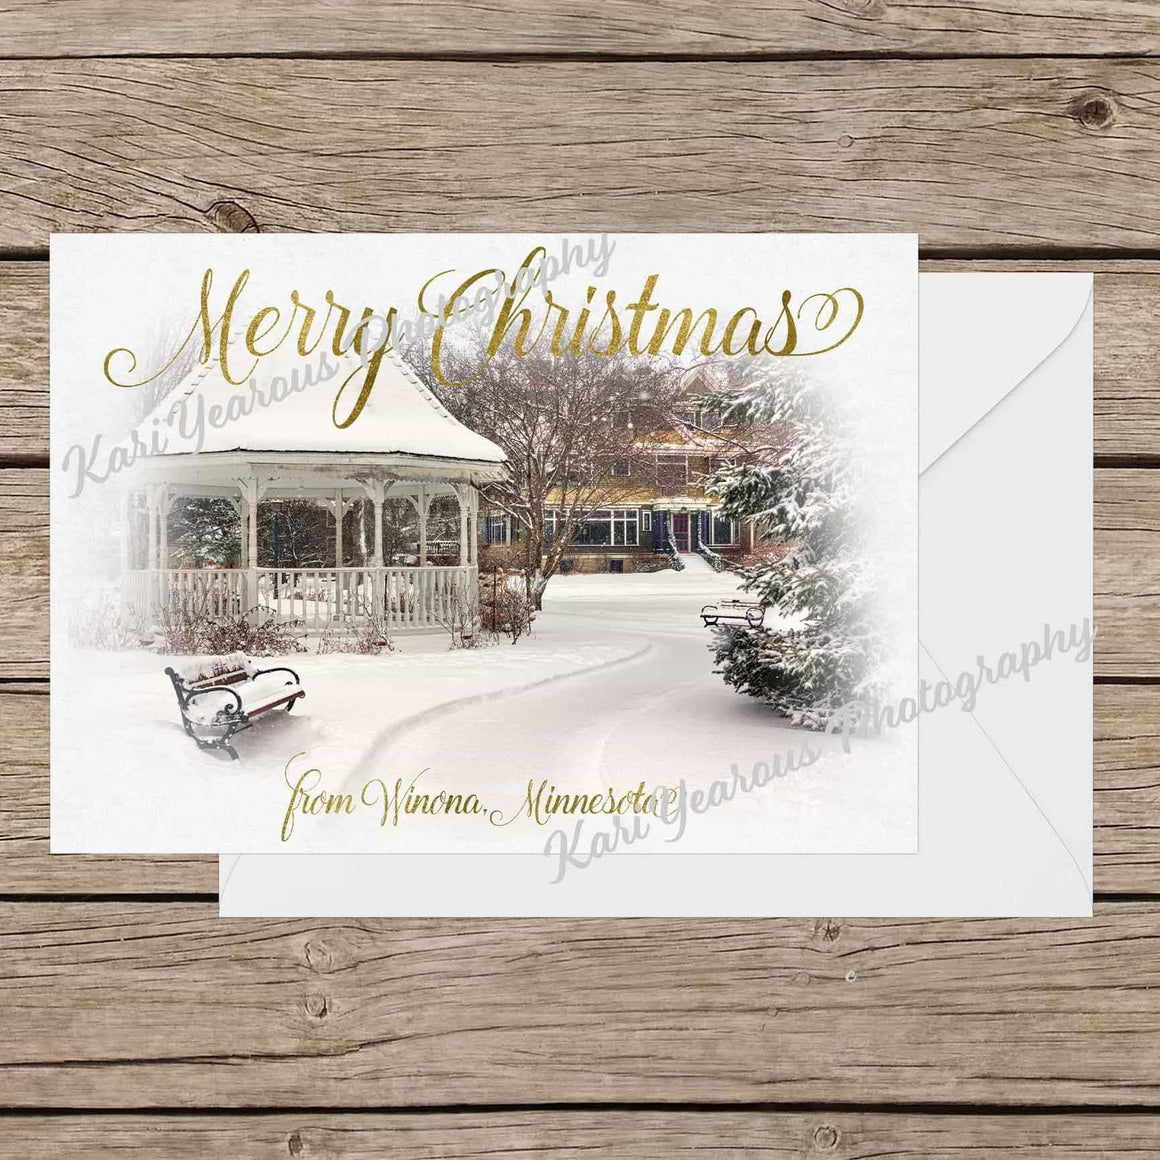 Card (Flat) Merry Christmas From Winona Minnesota, 5 pk - Kari Yearous Photography WinonaGifts KetoGifts LoveDecorah